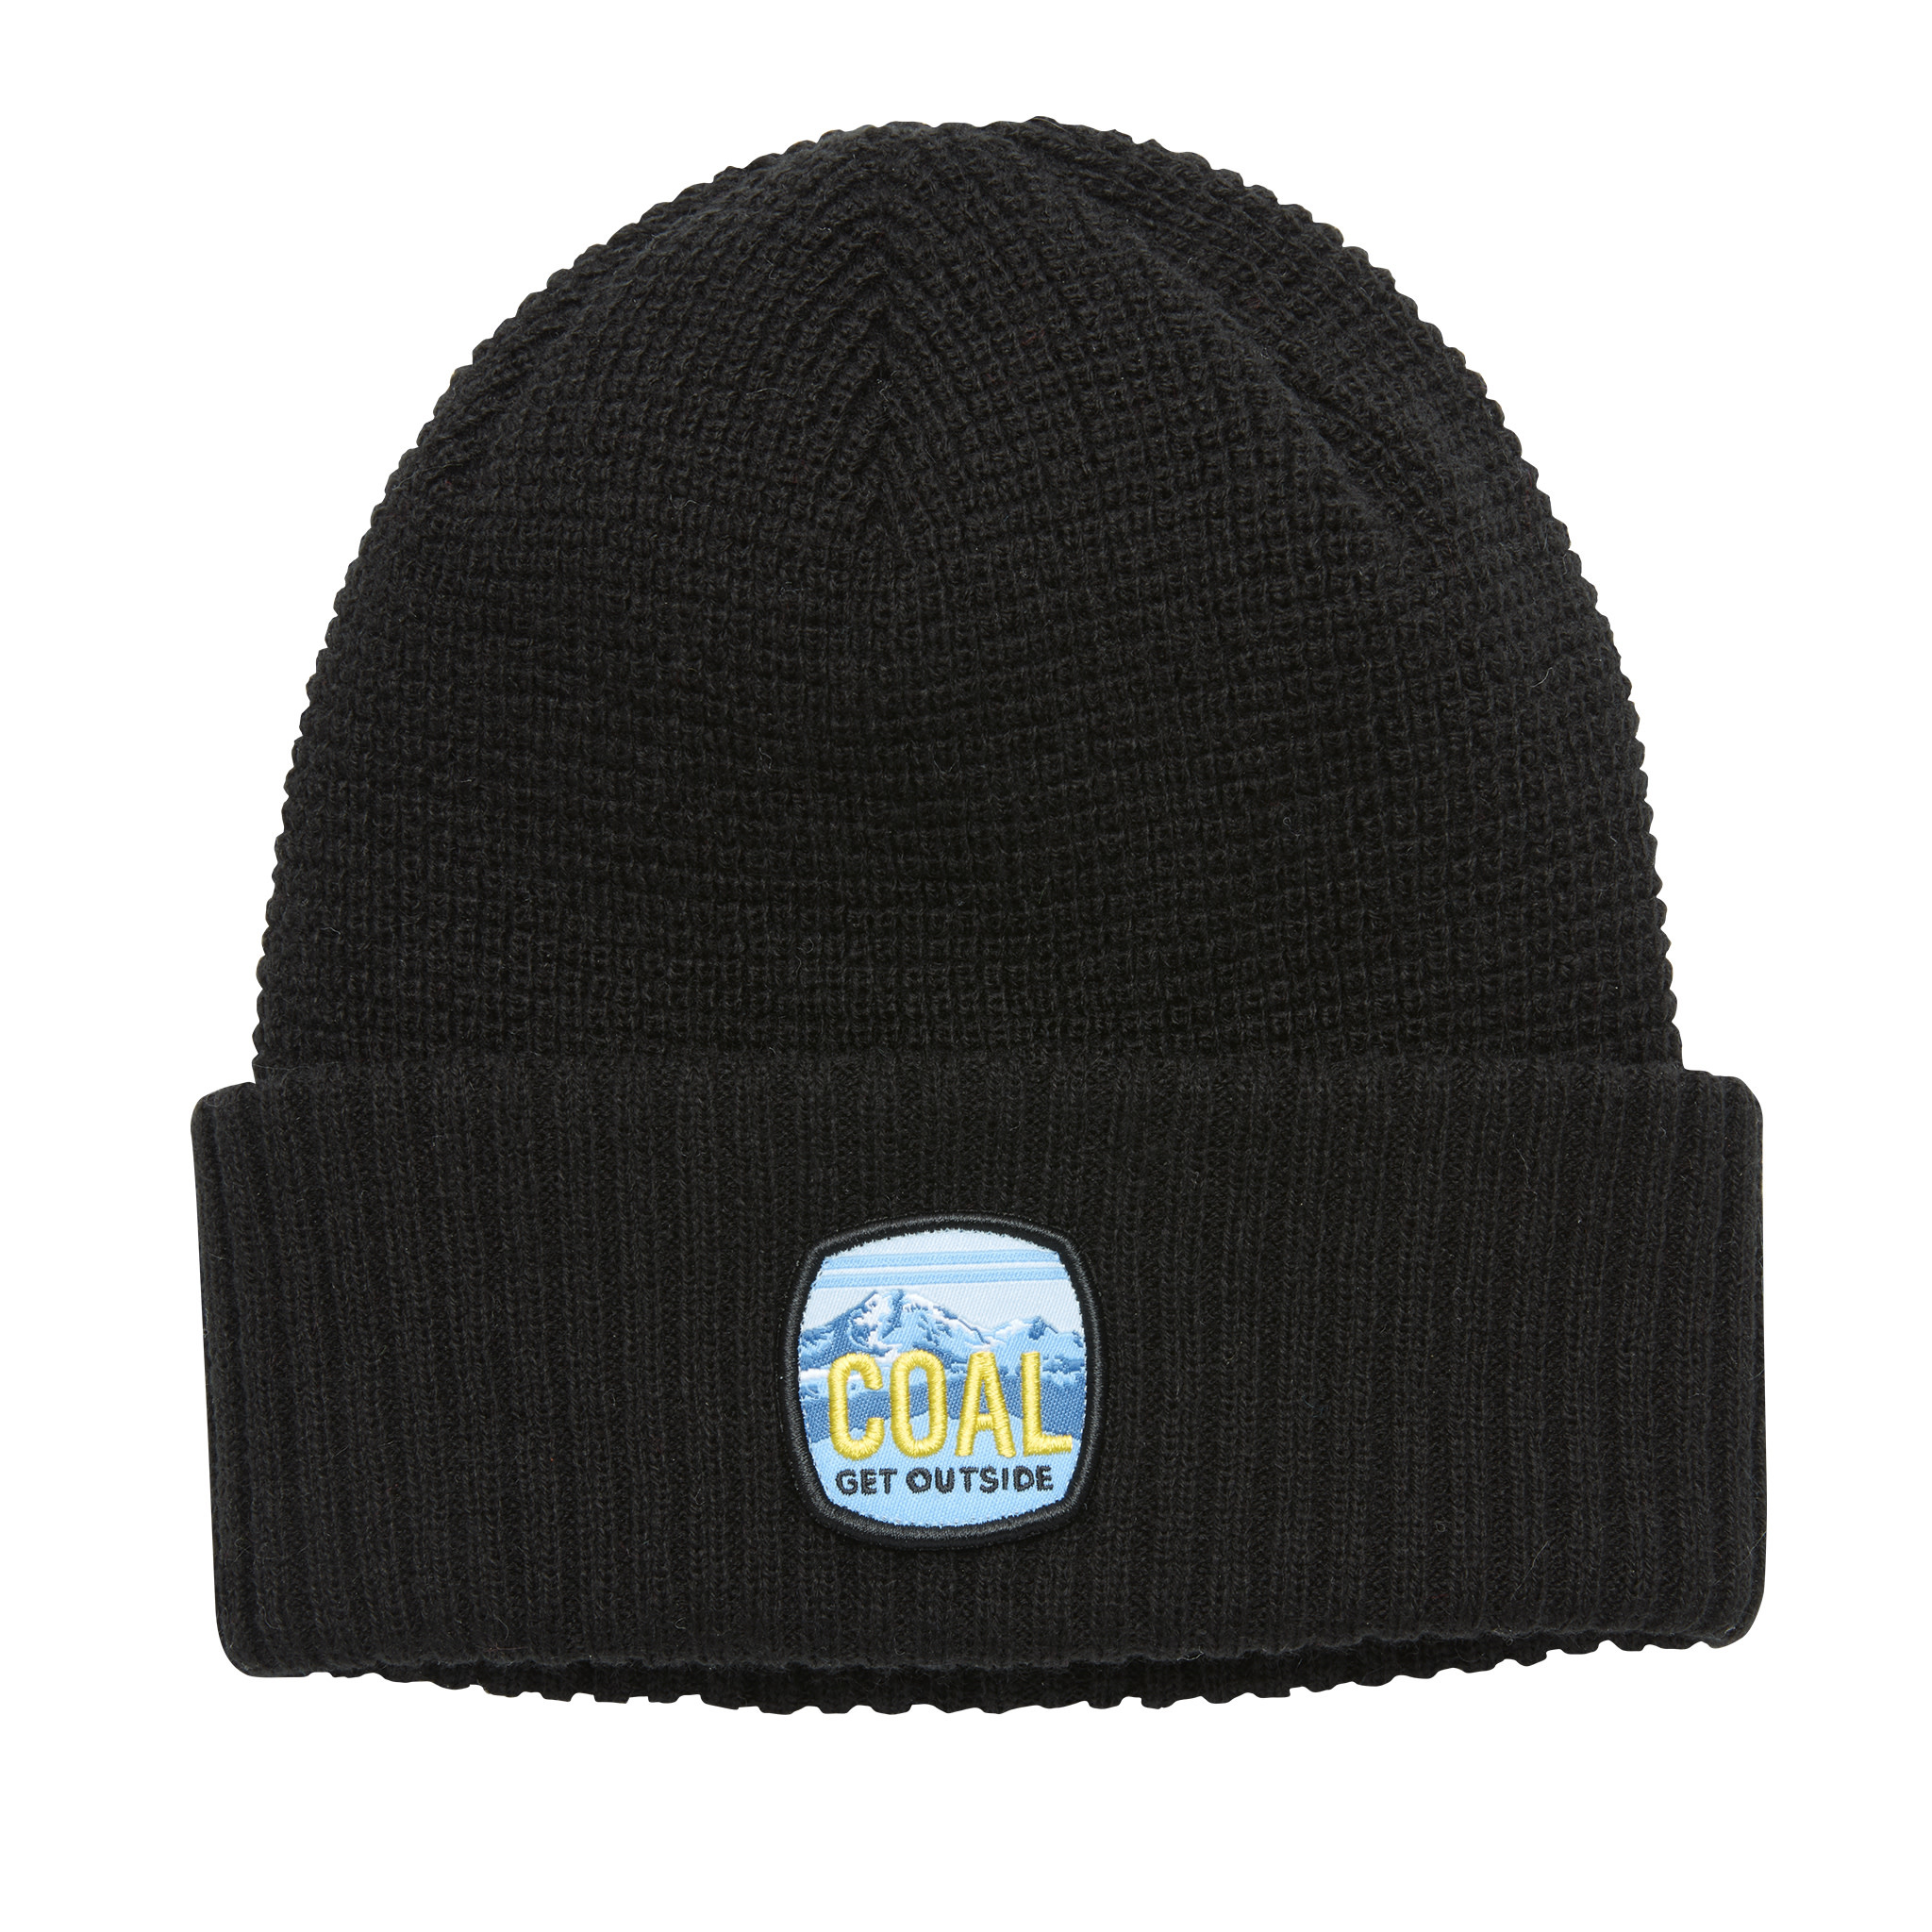 Coal Coal The Tumalo Beanie - Black